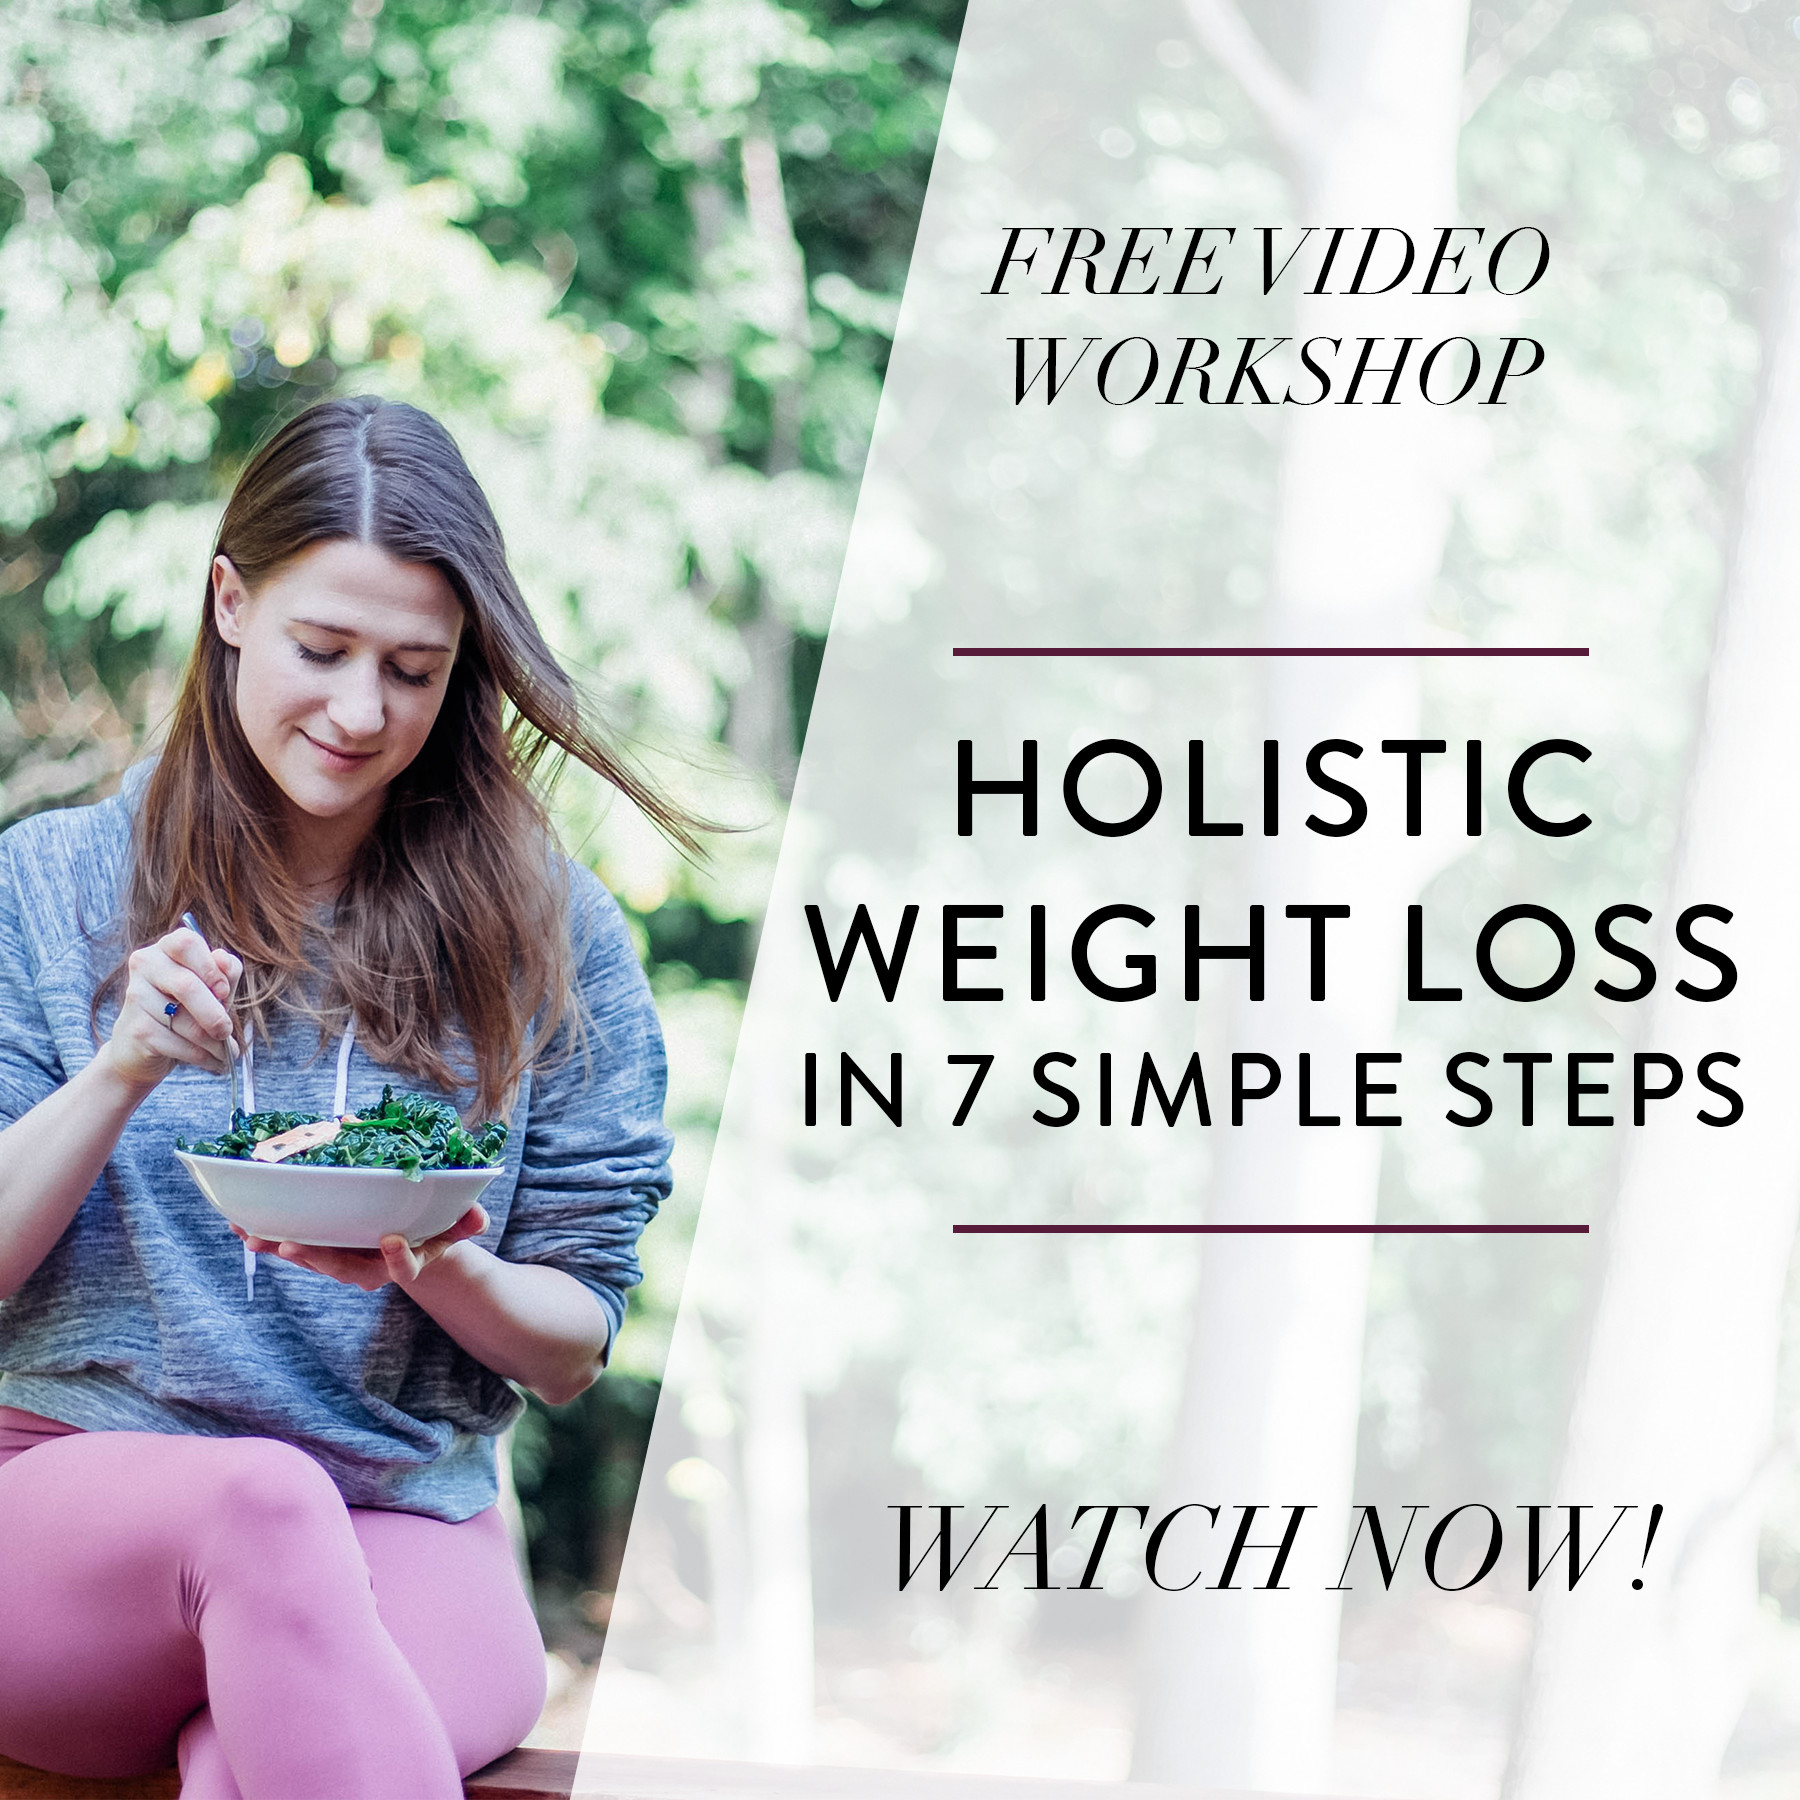 Holistic Weight Loss Workshop